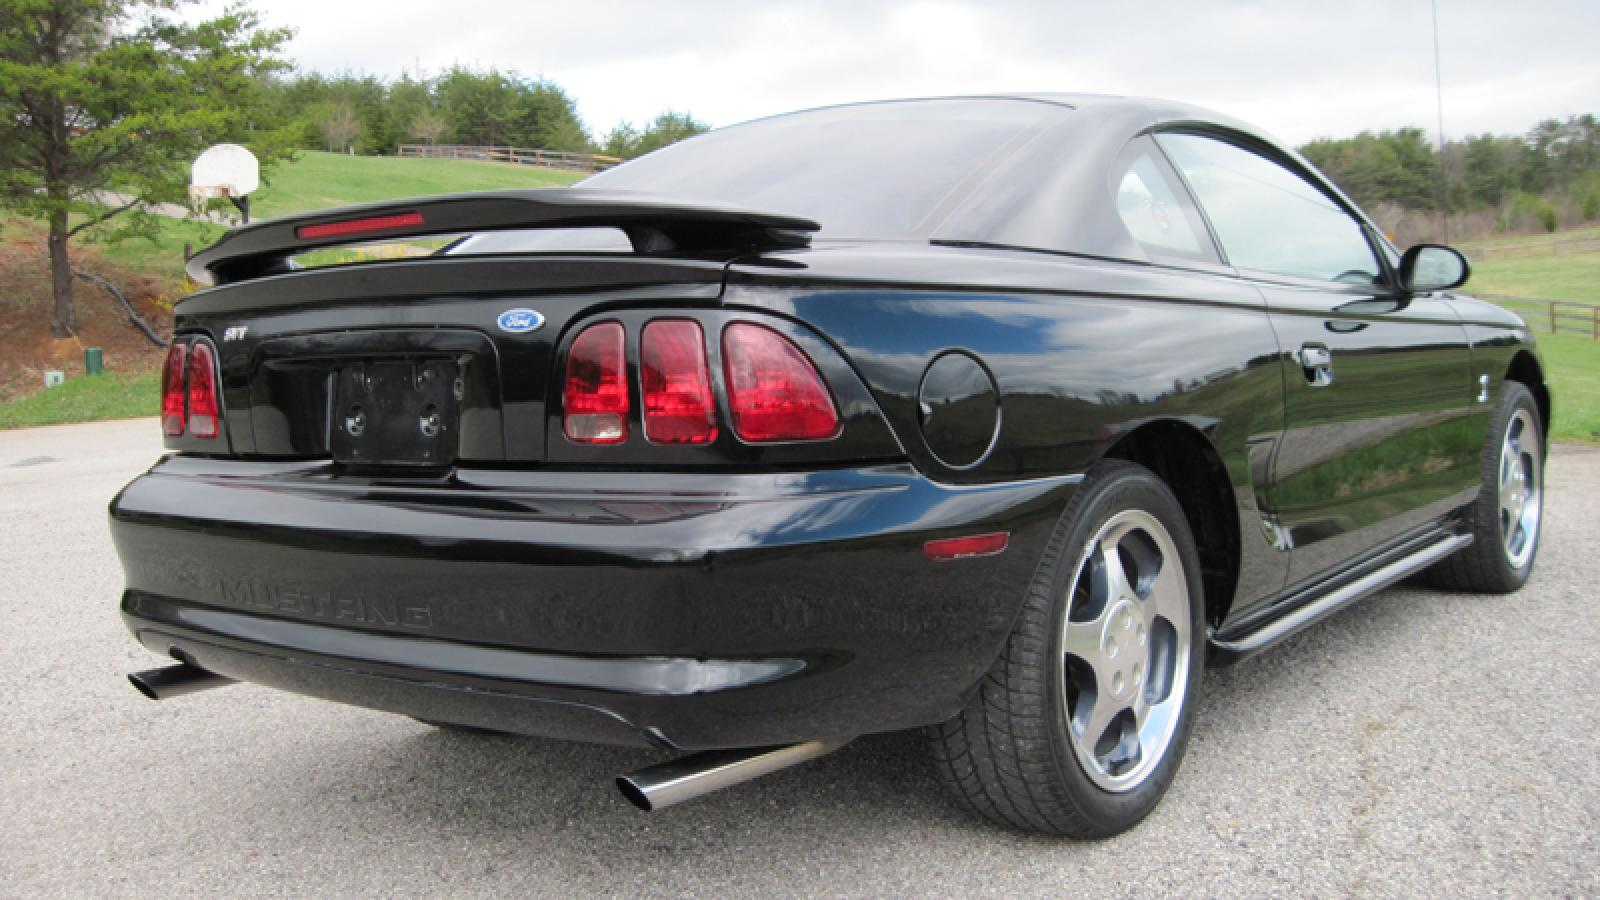 1994 ford mustang svt cobra information and photos zomb drive